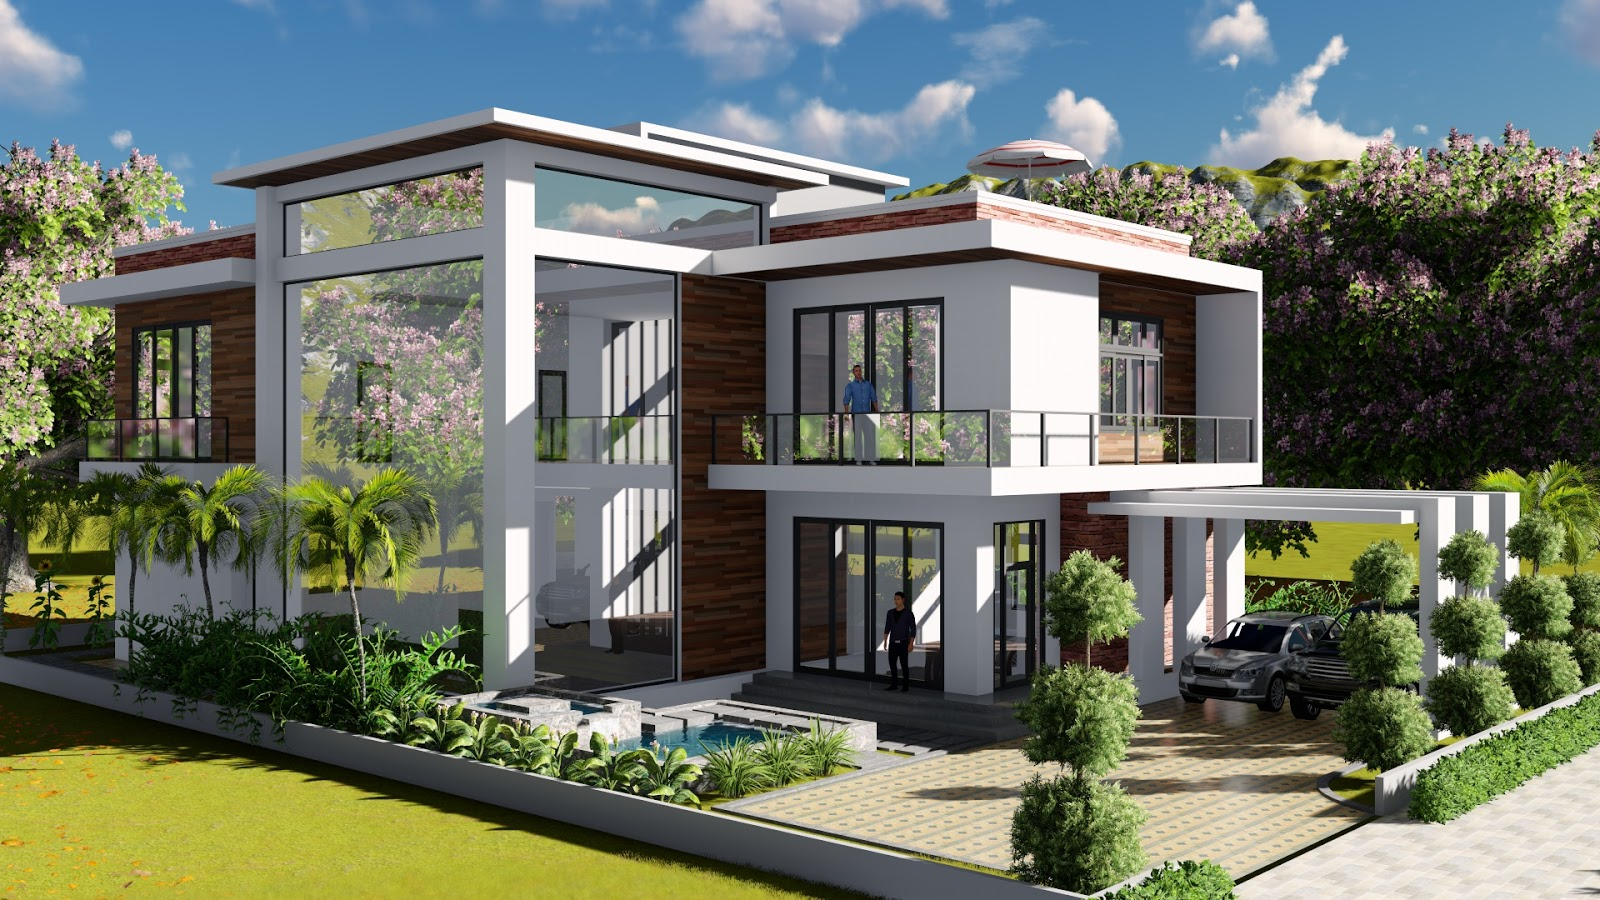 Sketchup Modeling Lumion Render 2 Stories Villa Design